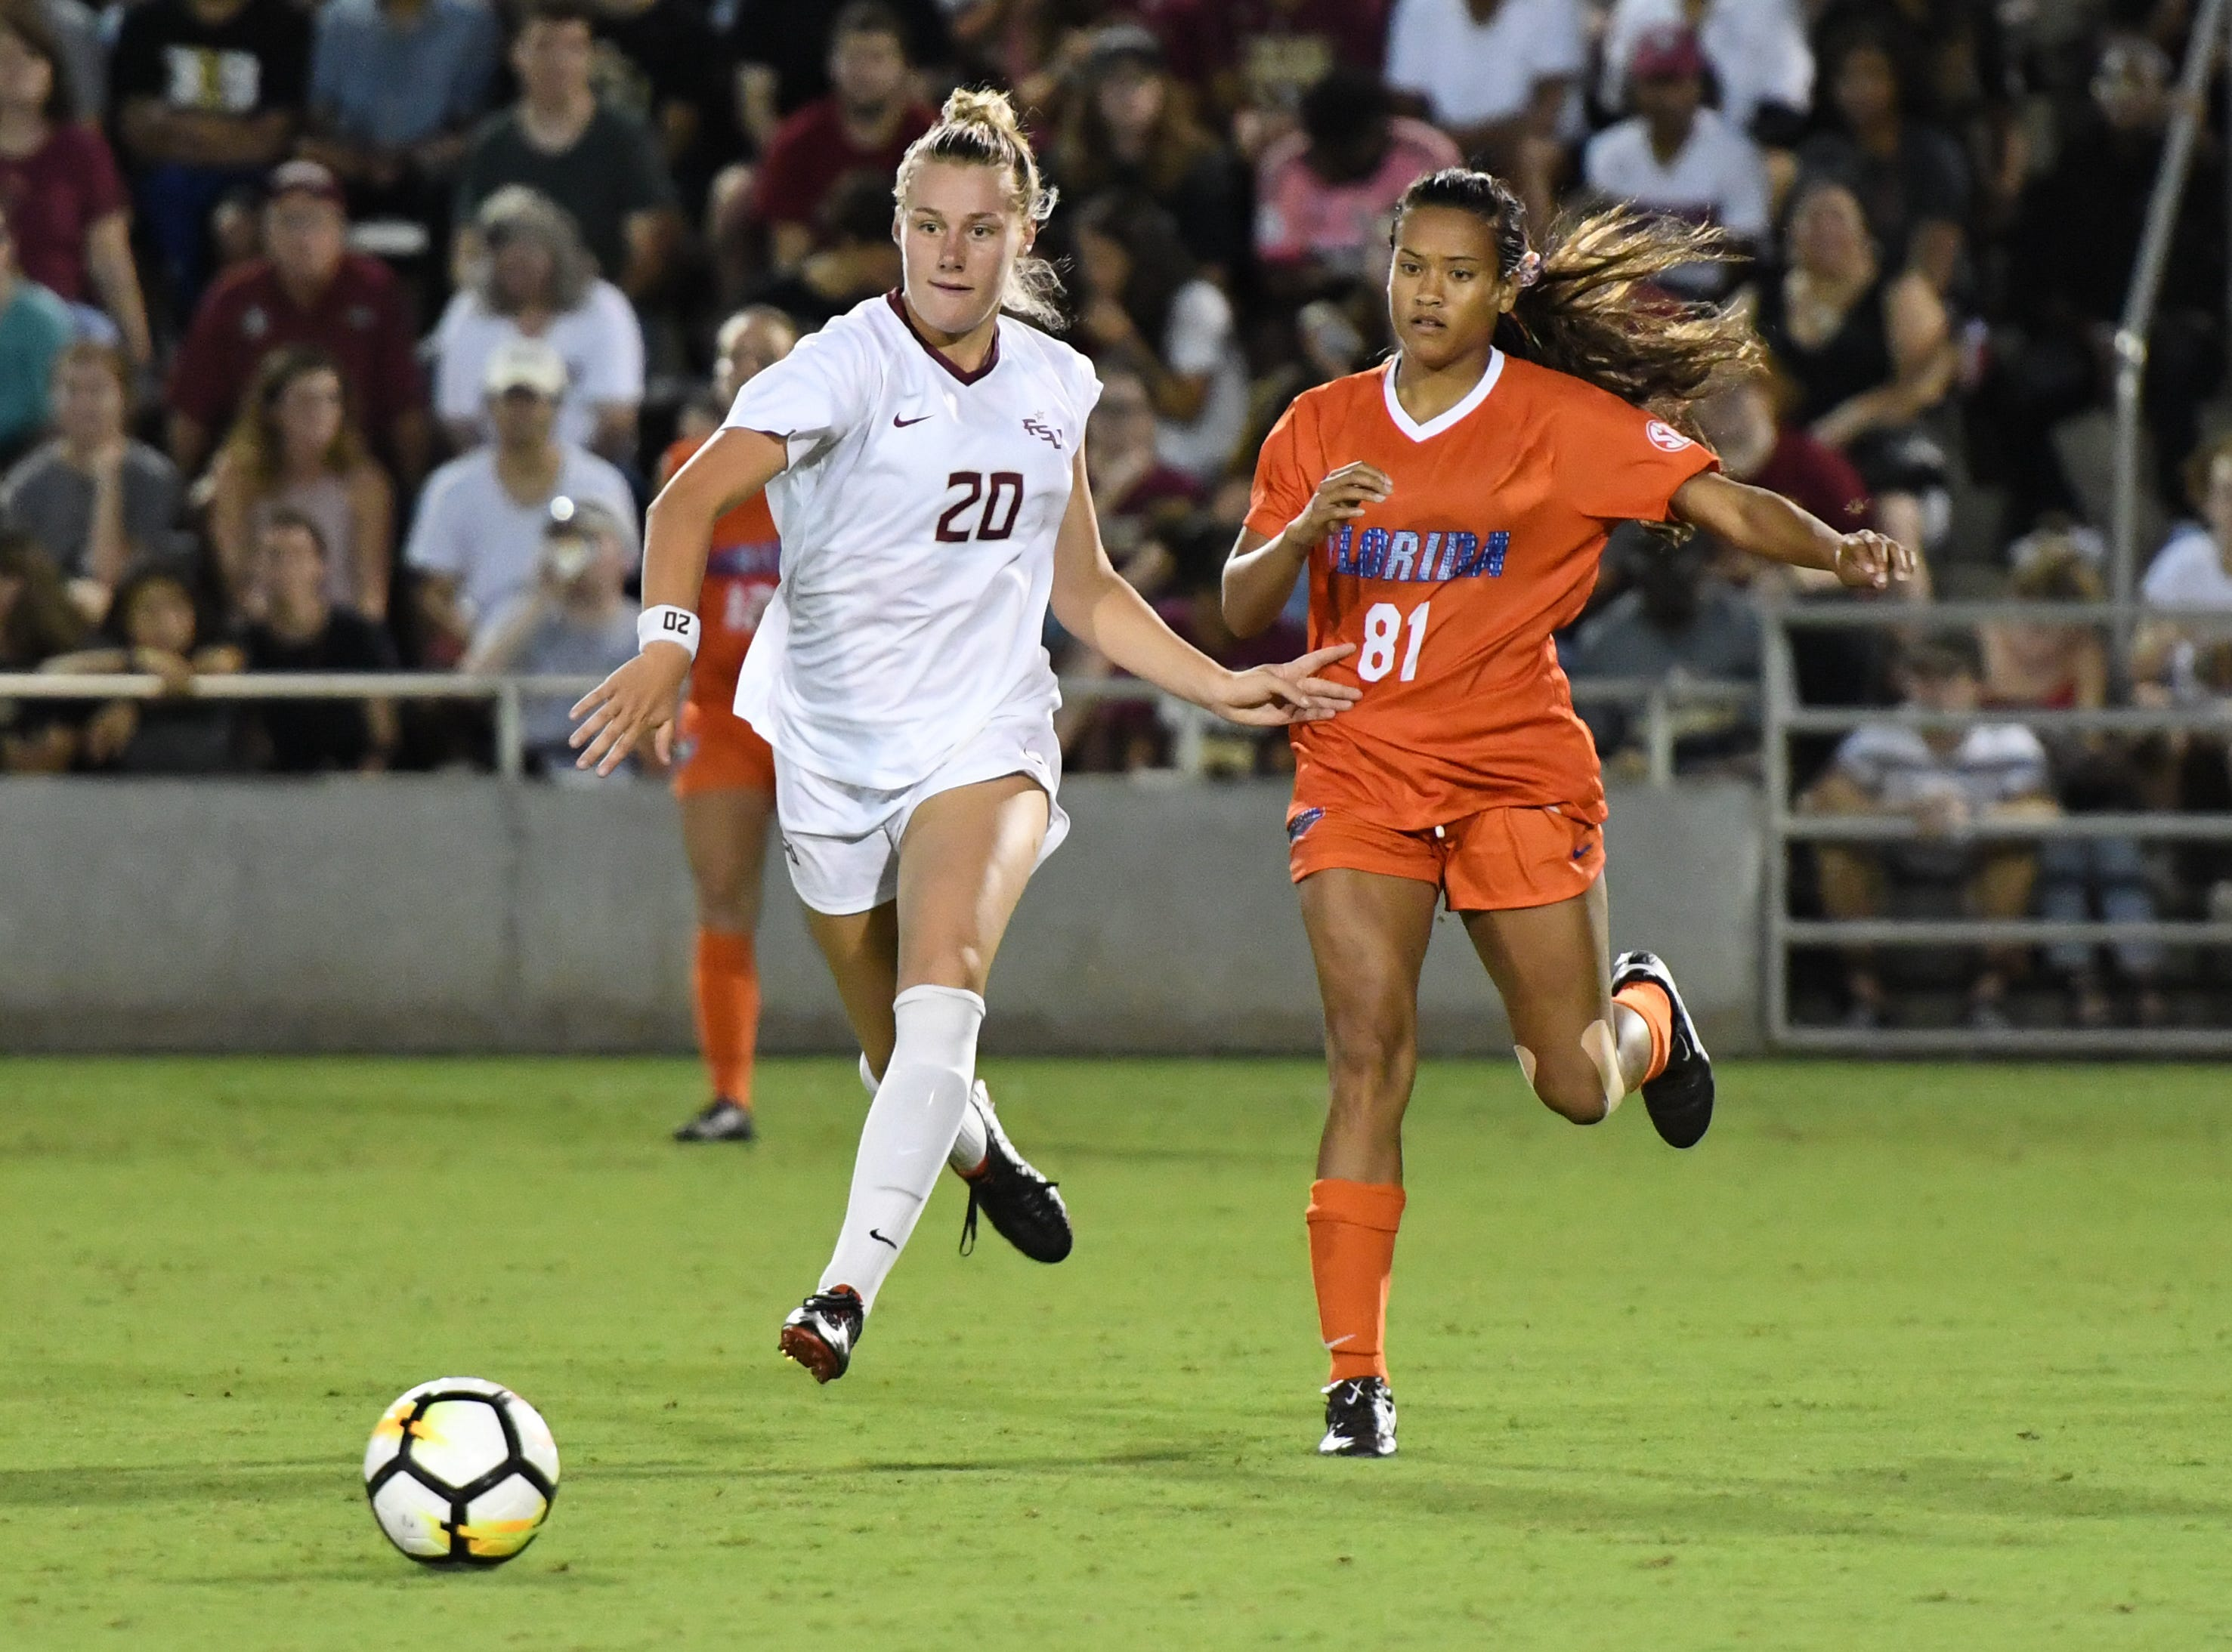 FSU redshirt sophomore forward Kristen McFarland (20) cuting through the Gator defense during the first half of FSU's game against Florida on friday night at the Seminole Soccer Complex.